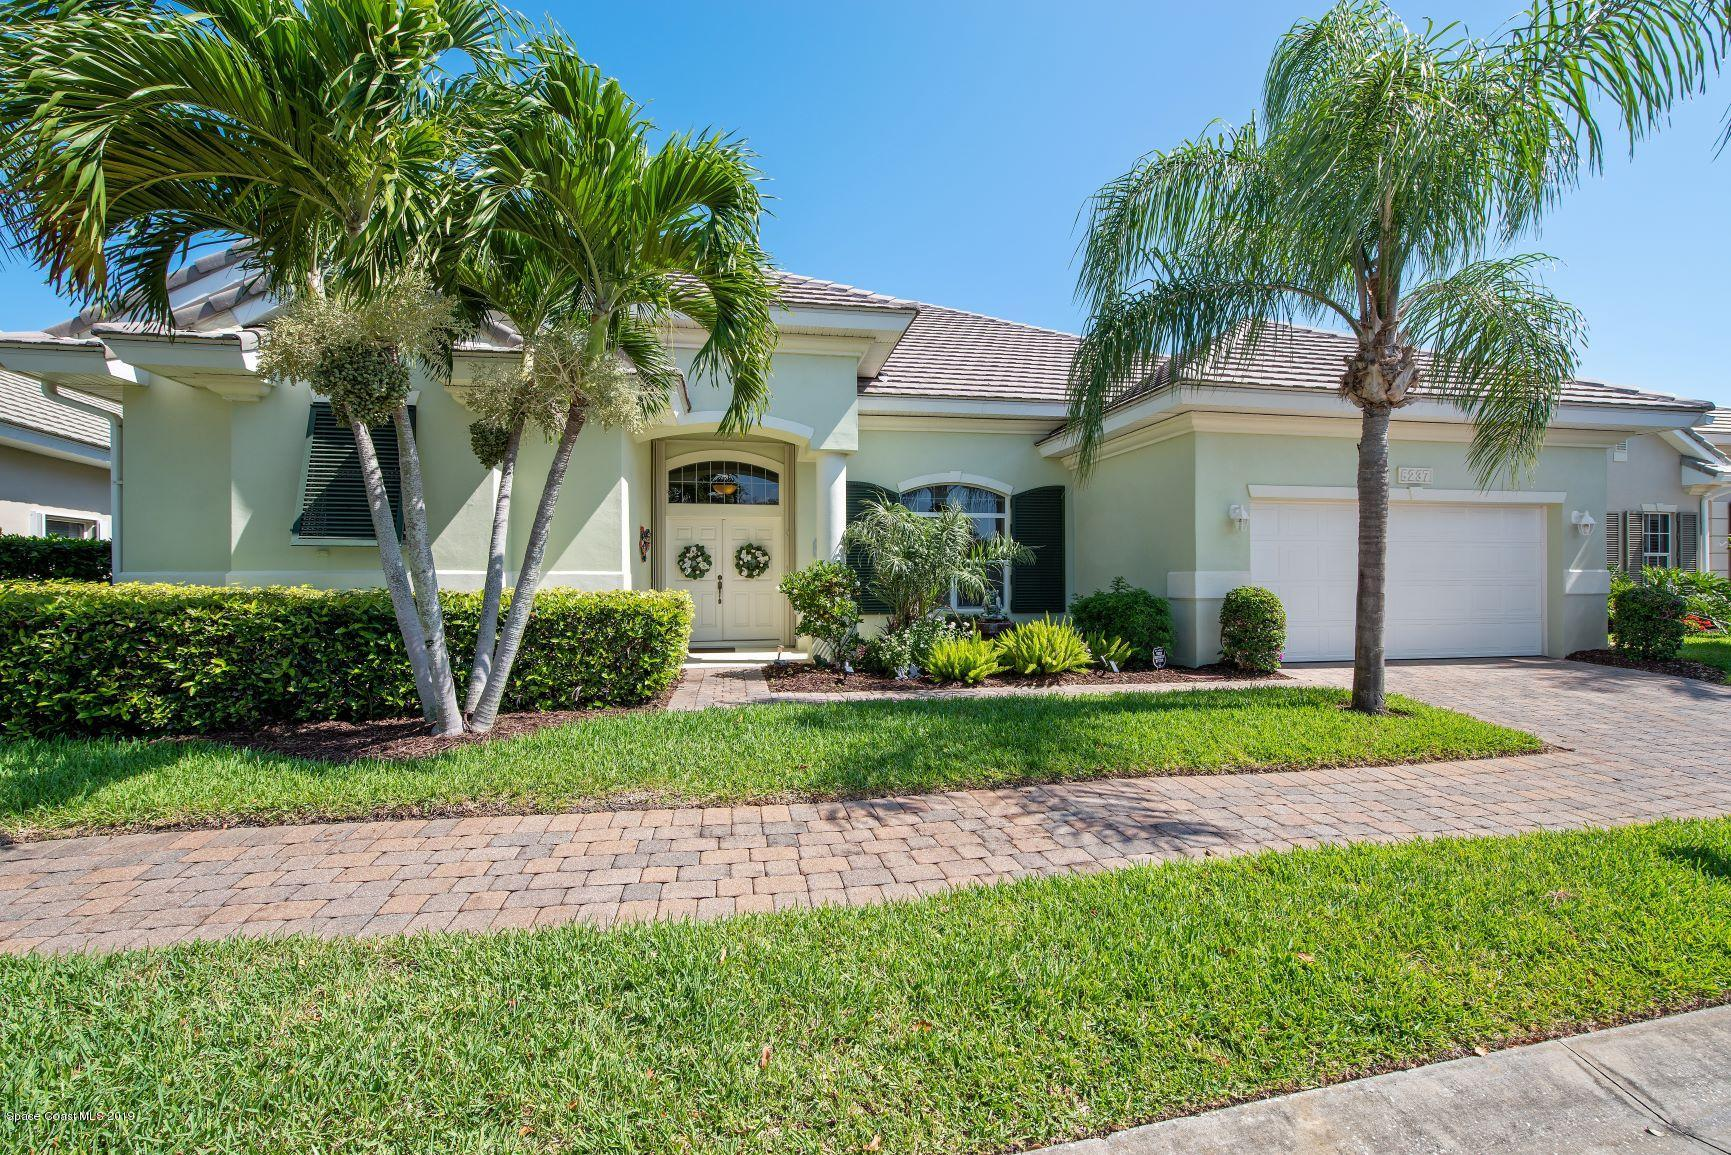 Single Family Home for Sale at 5237 Solway Melbourne Beach, Florida 32951 United States